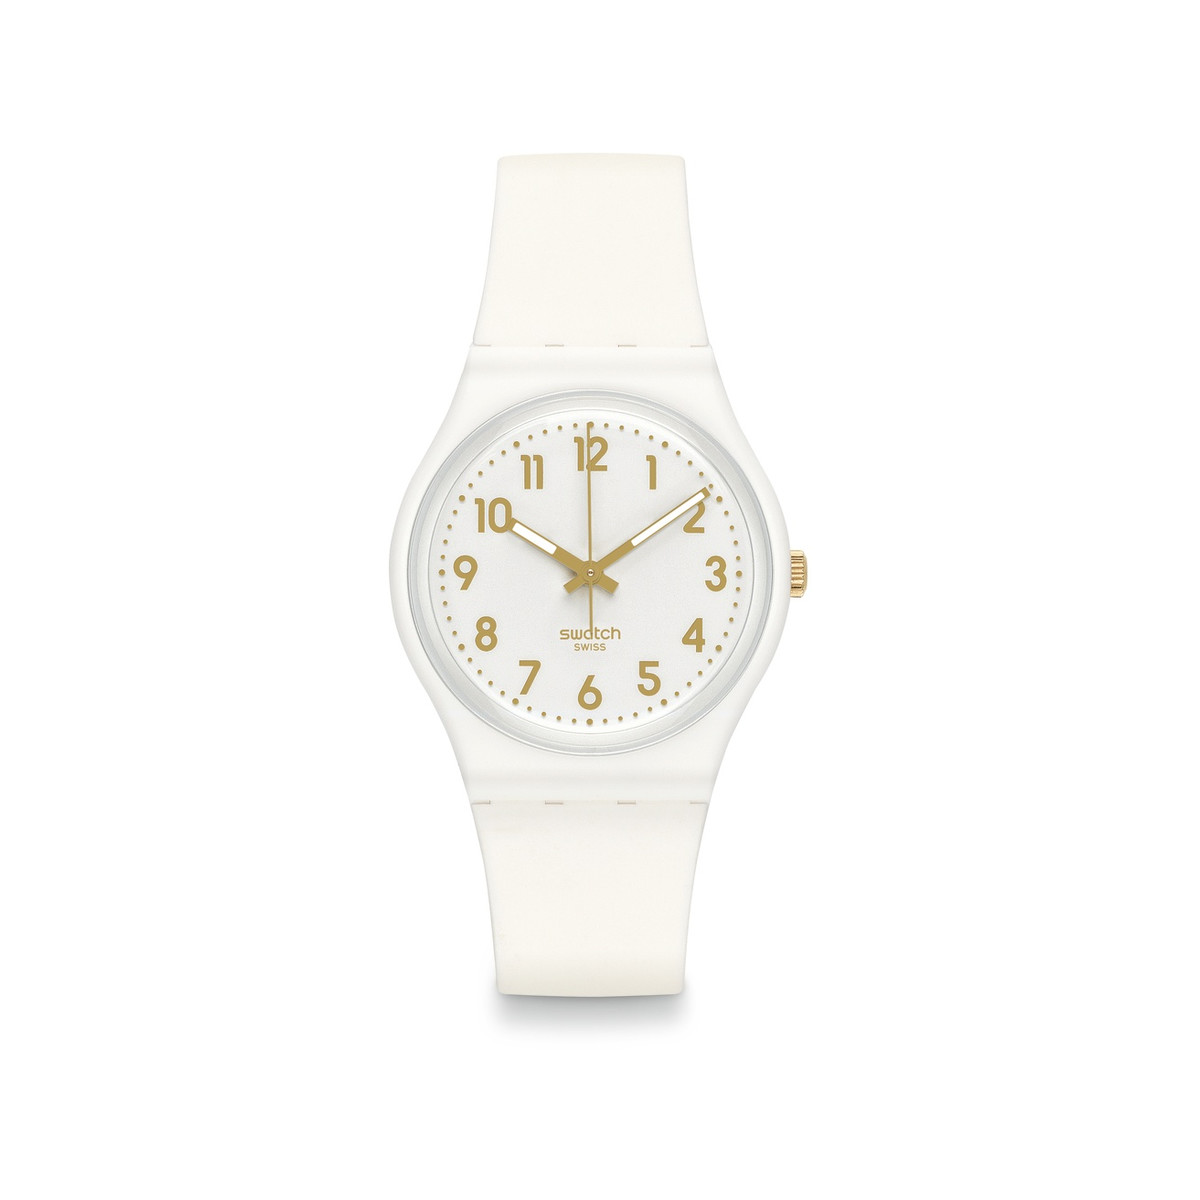 Montre Swatch femme silicone blanc